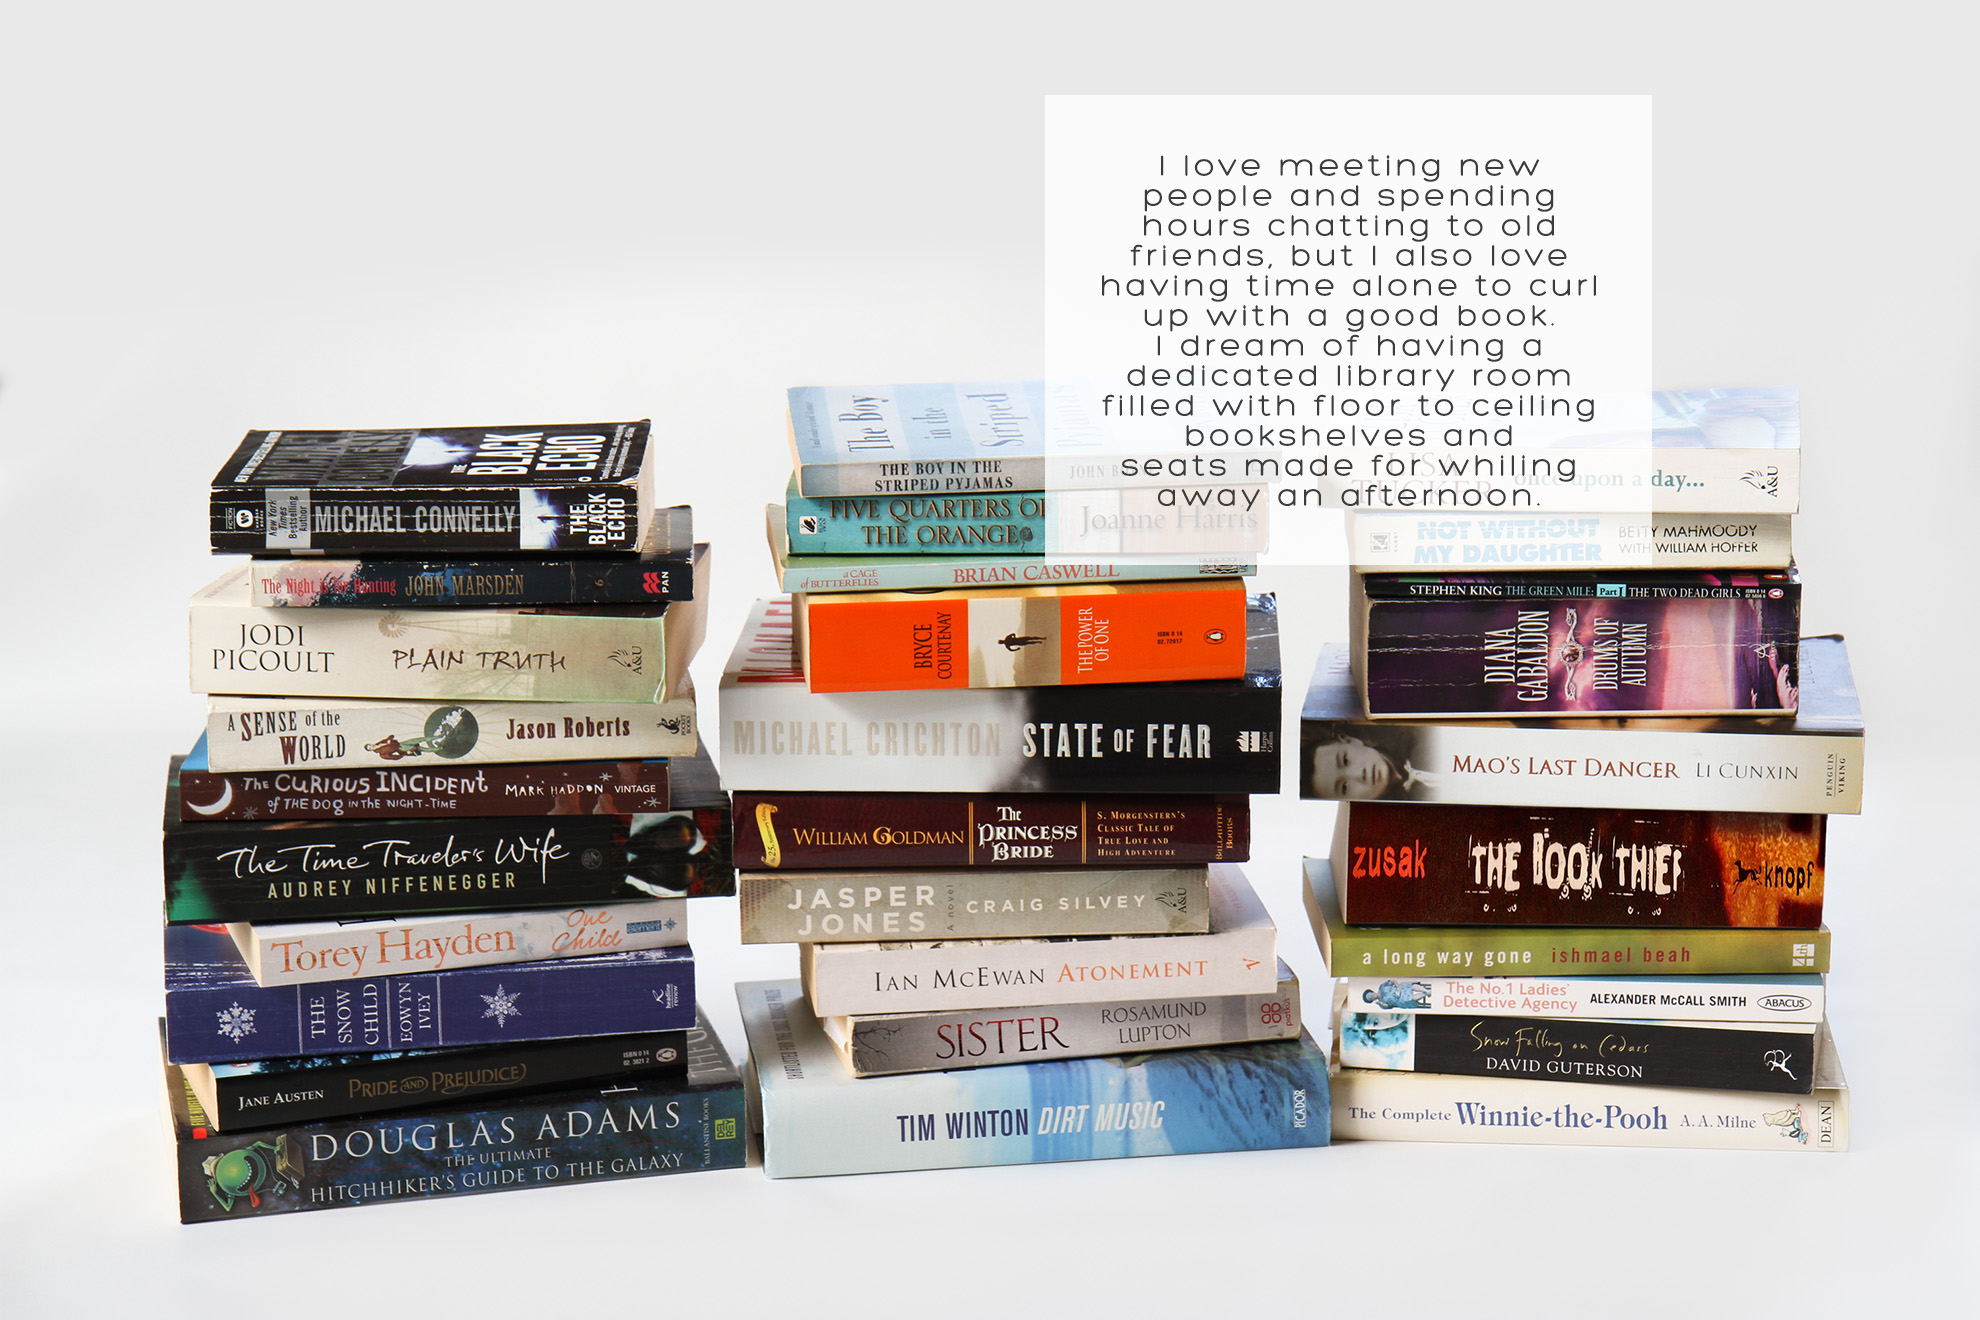 11-Books-and-reading.jpg